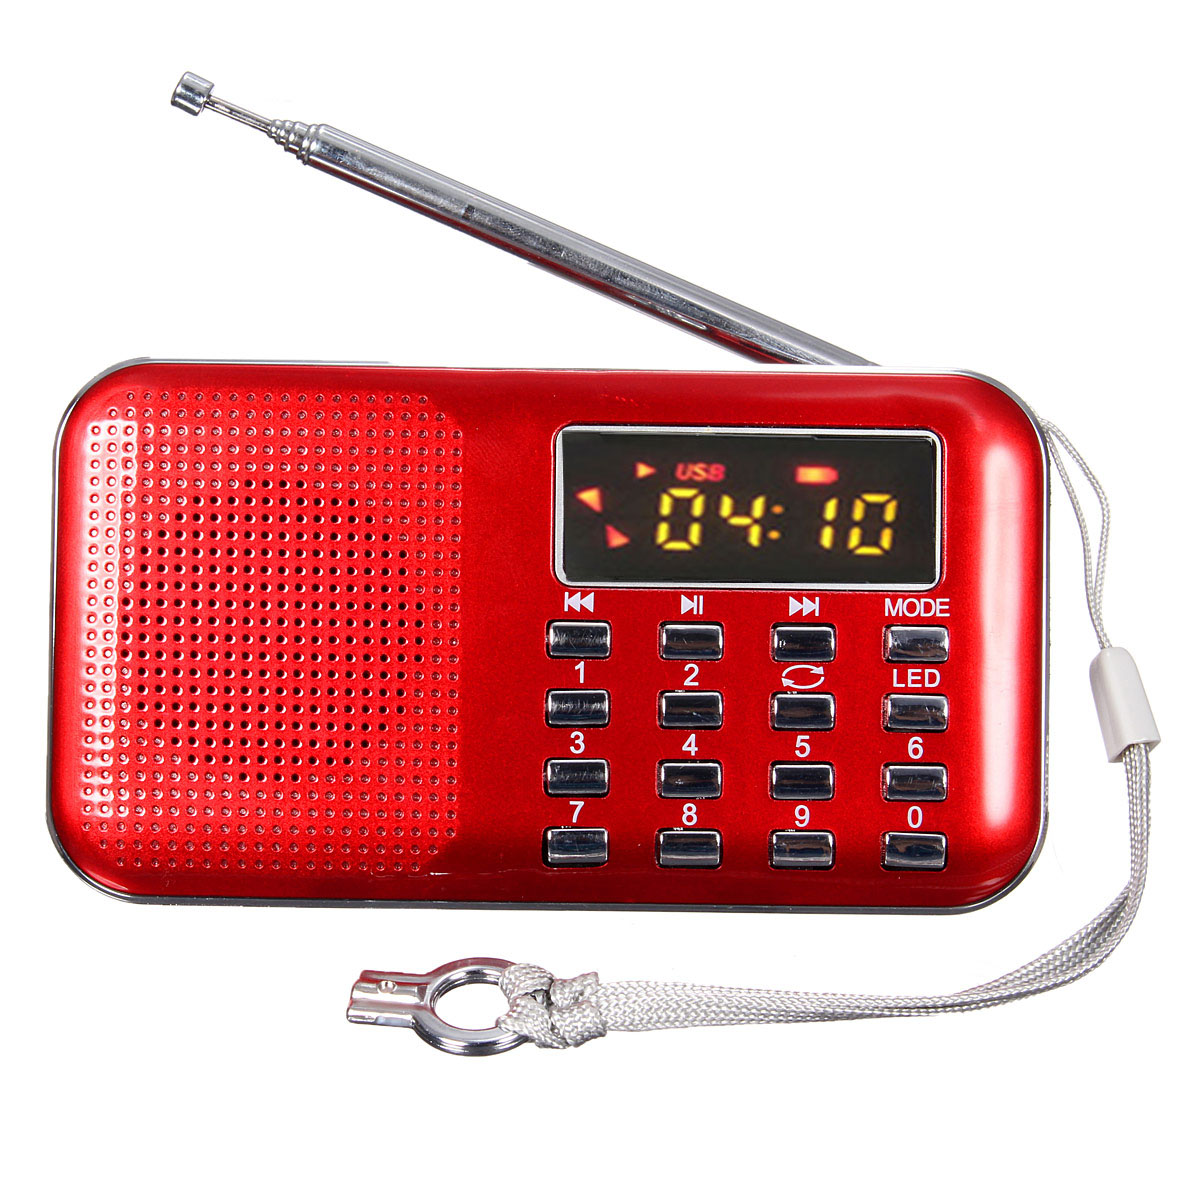 mini portable led digital fm radio speaker usb micro sd tf card mp3 music player red lazada. Black Bedroom Furniture Sets. Home Design Ideas